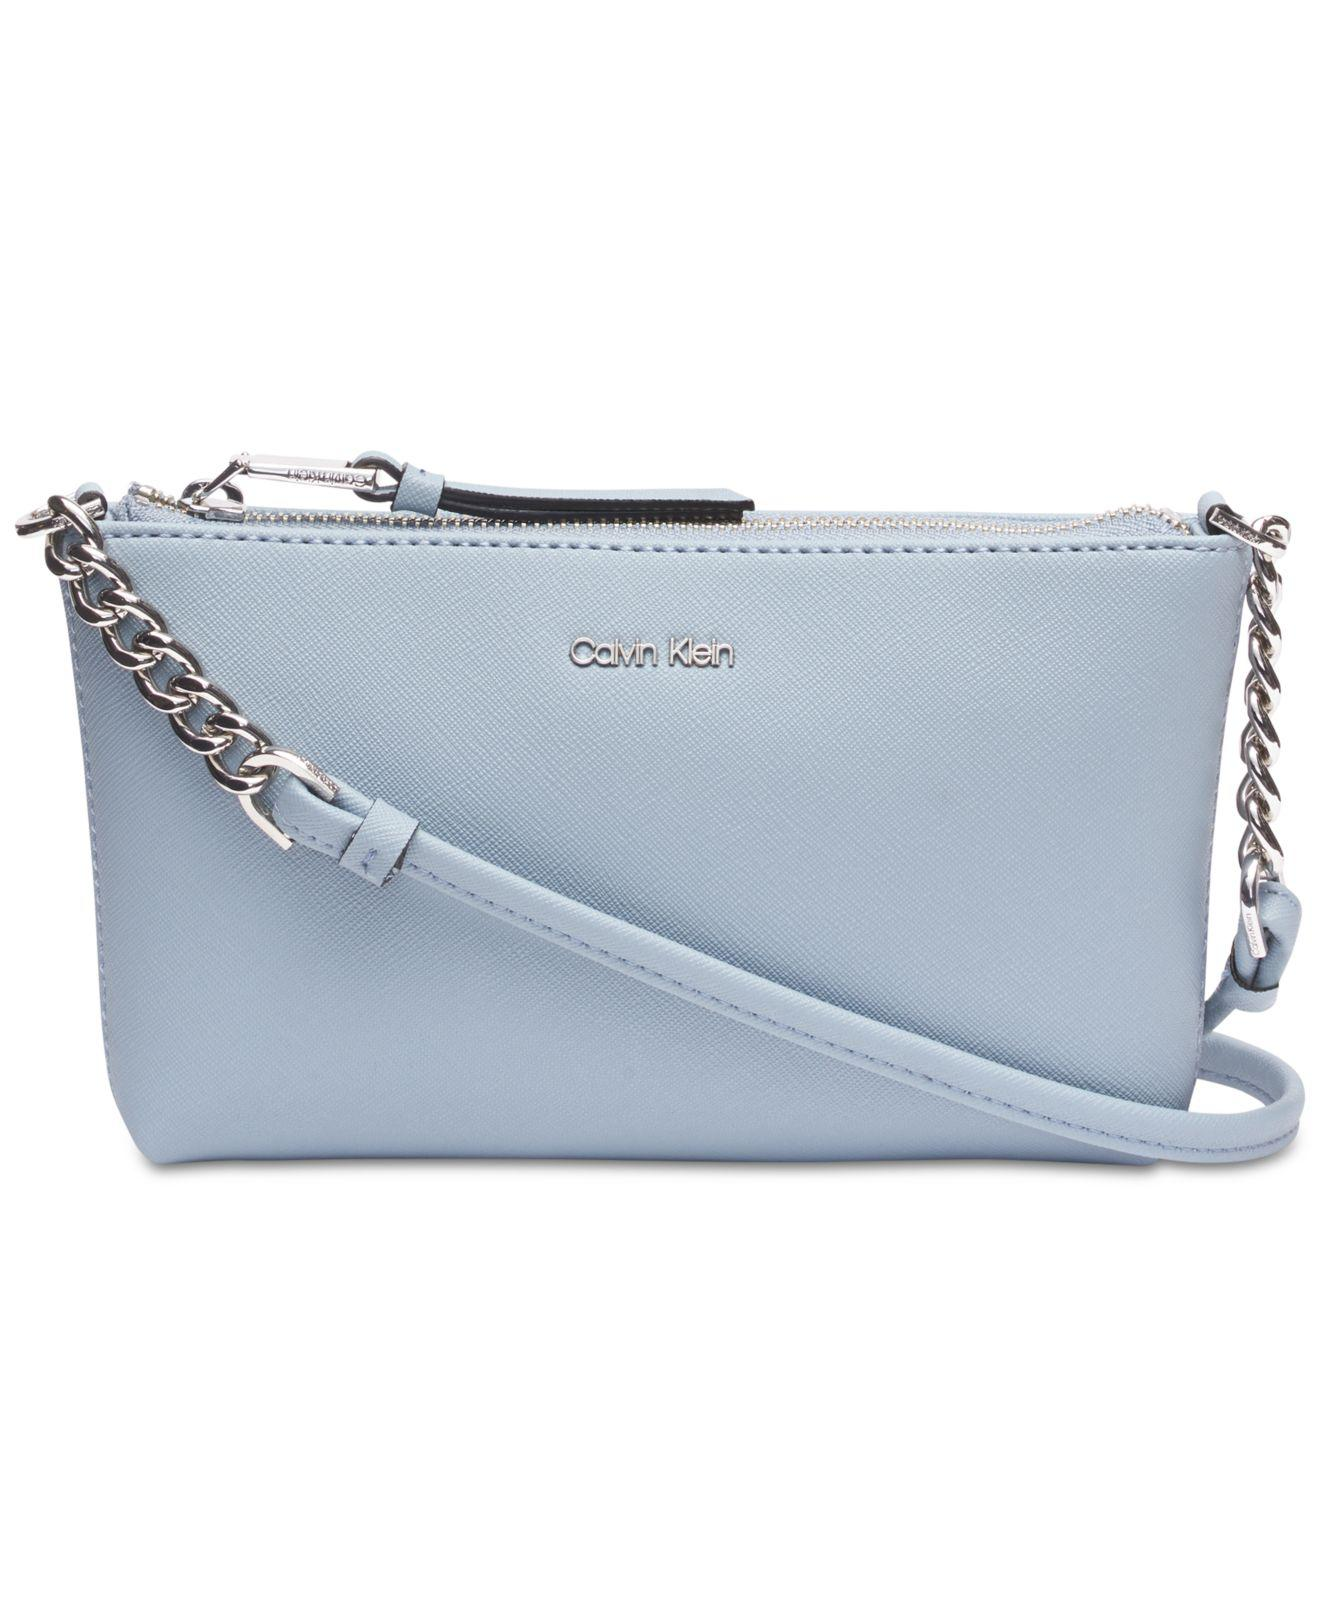 816e67a52 Calvin Klein Hayden Saffiano Leather Chain Crossbody in Blue - Lyst